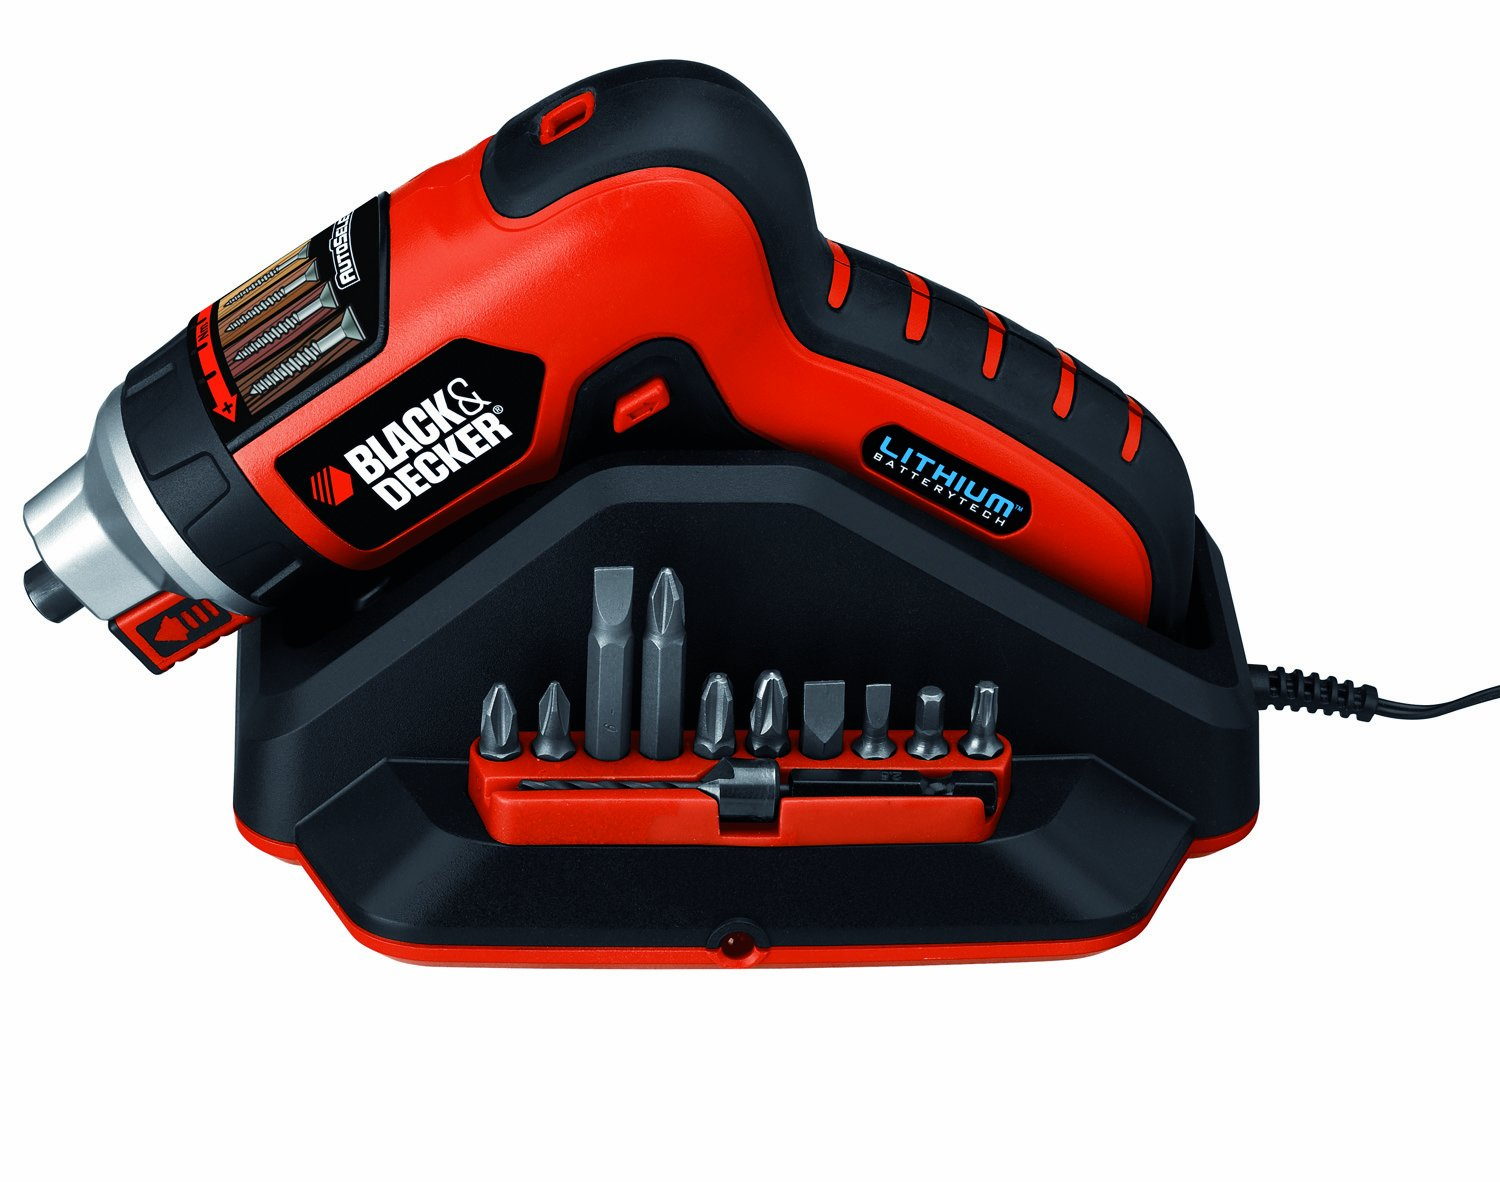 Destornillador eléctrico Black and Decker AS36LN-QW